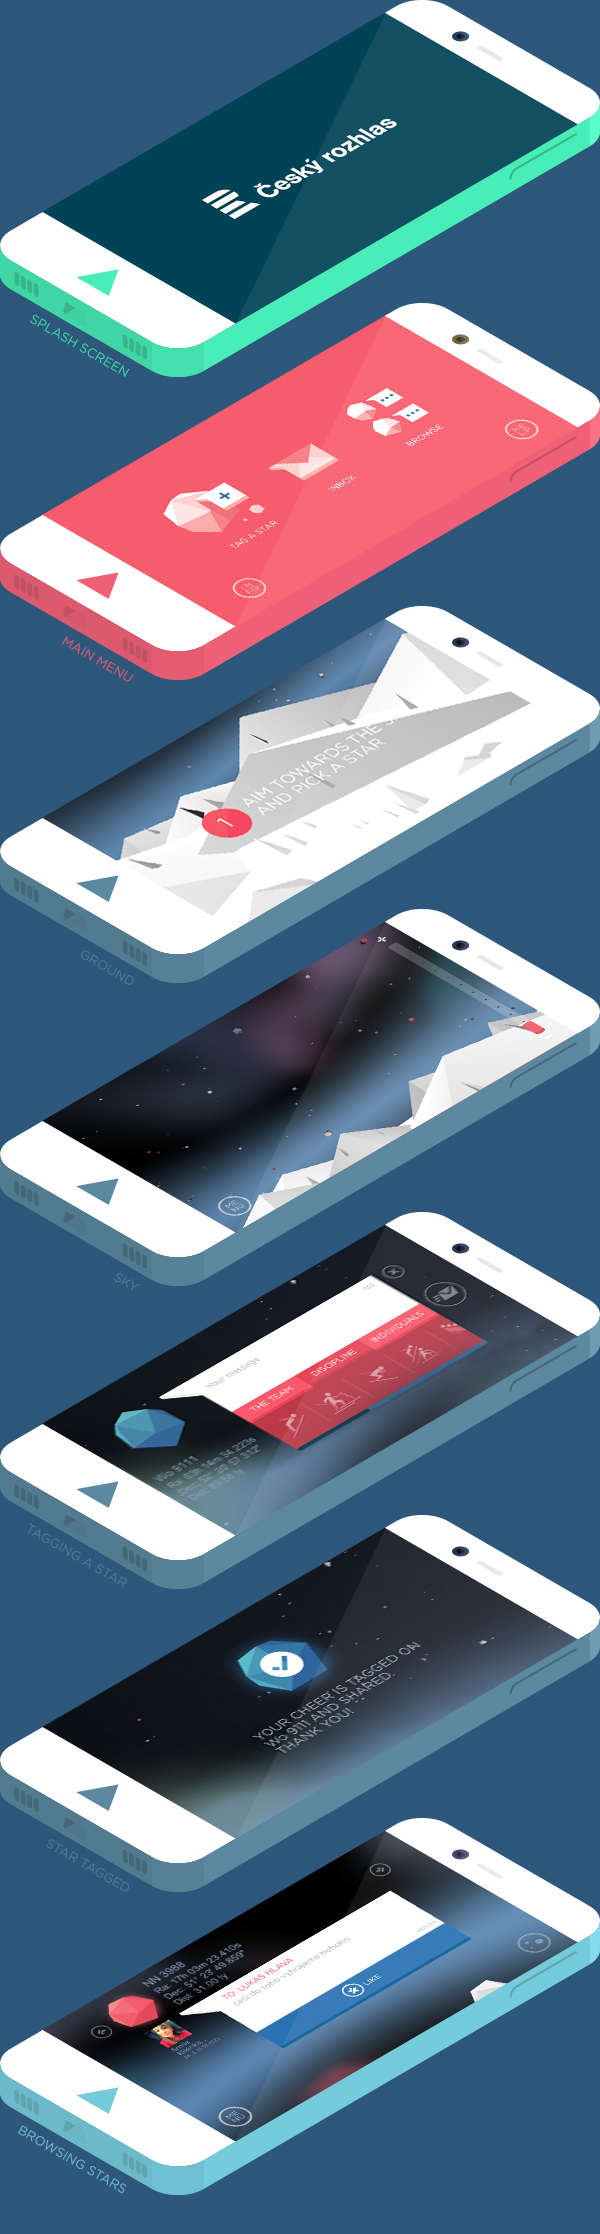 app application ios apple android sochi Olympics stars Czech fans Isometric lowpoly branded tag Generated